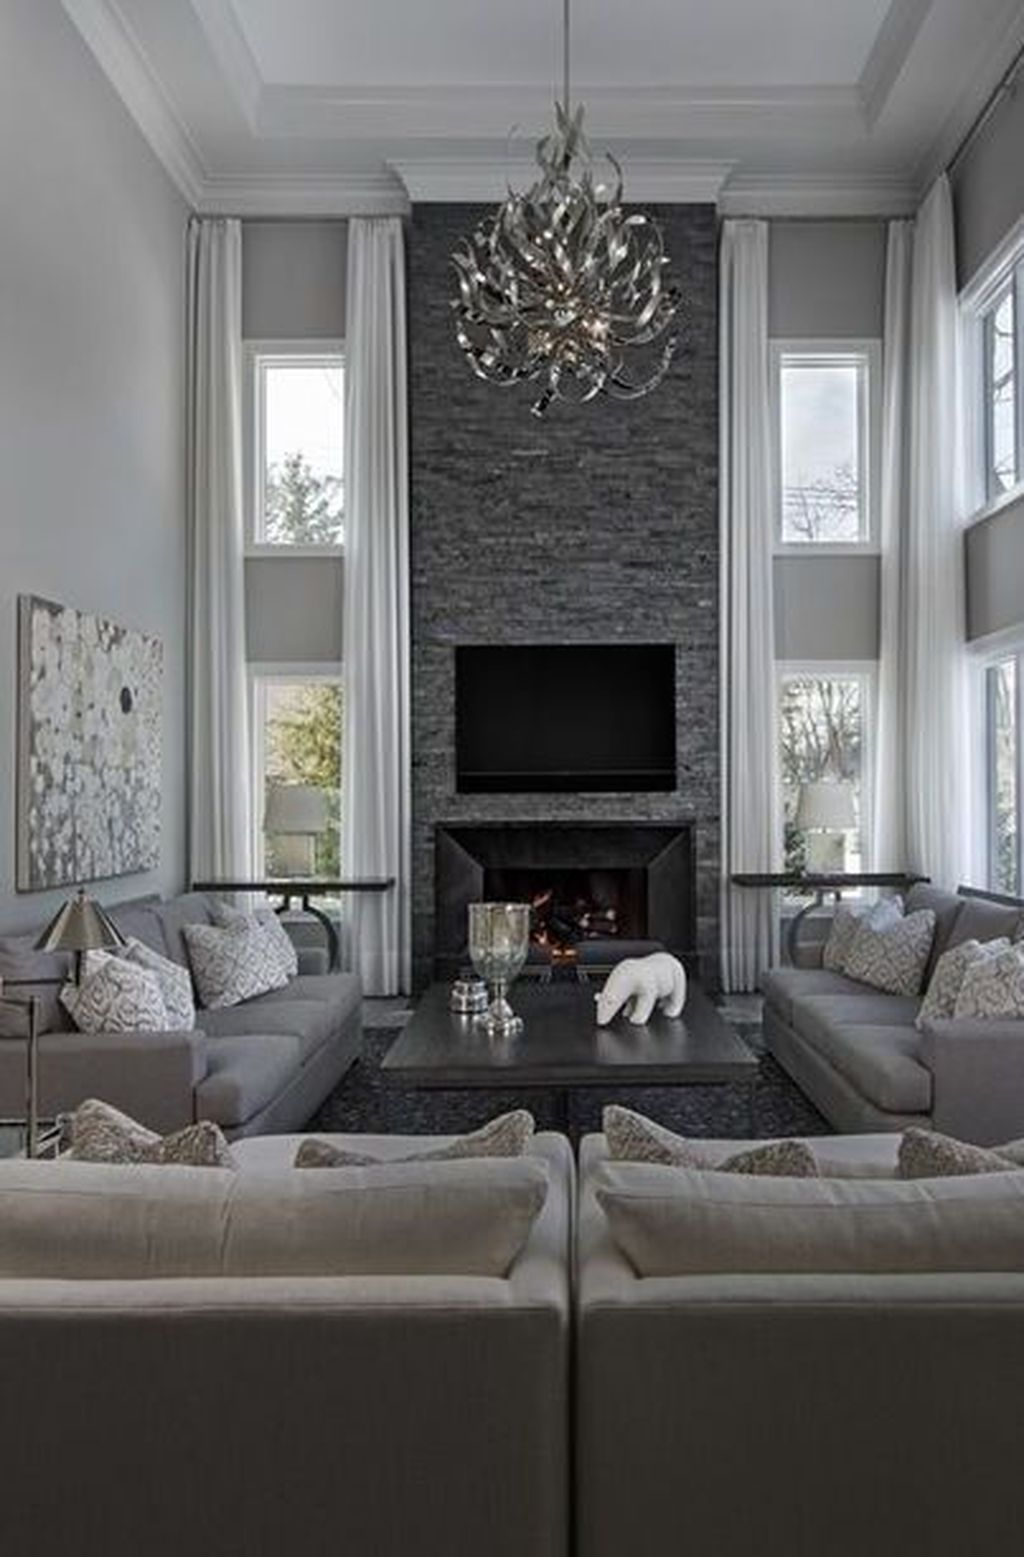 31 Charming Living Room Decorating Ideas With Grey Color To Try Asap In 2020 Elegant Living Room Decor Elegant Living Room High Ceiling Living Room